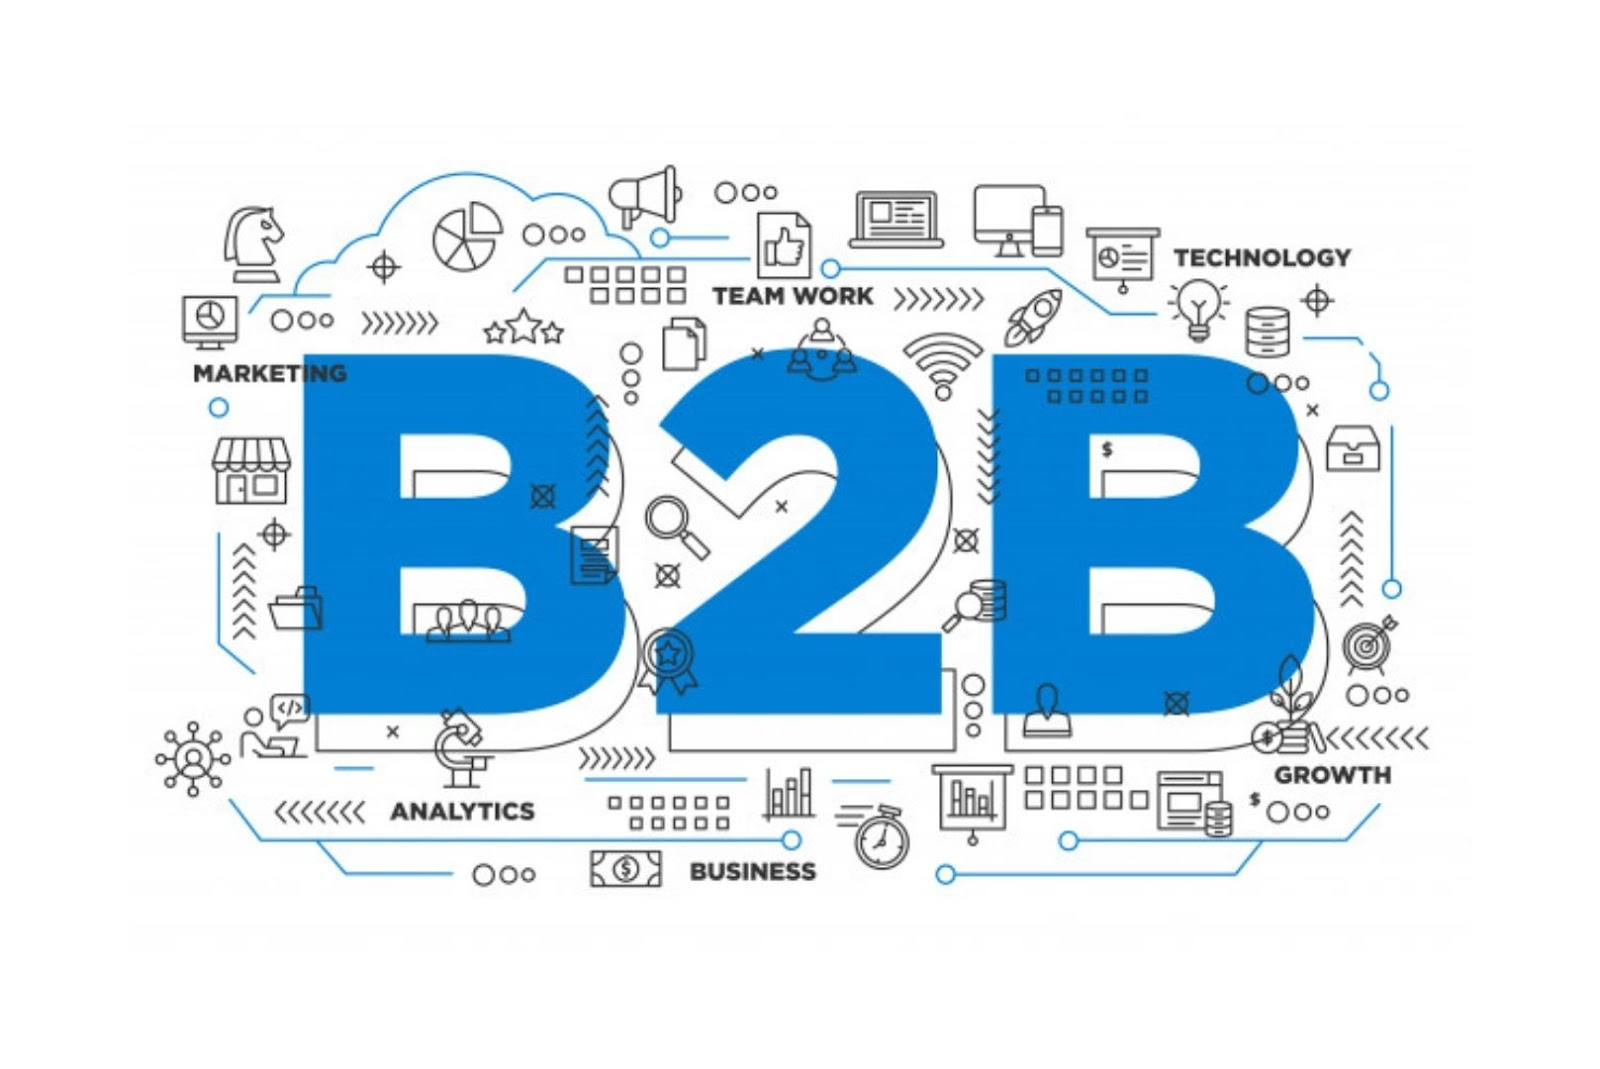 E-commerce ideas for B2B Products